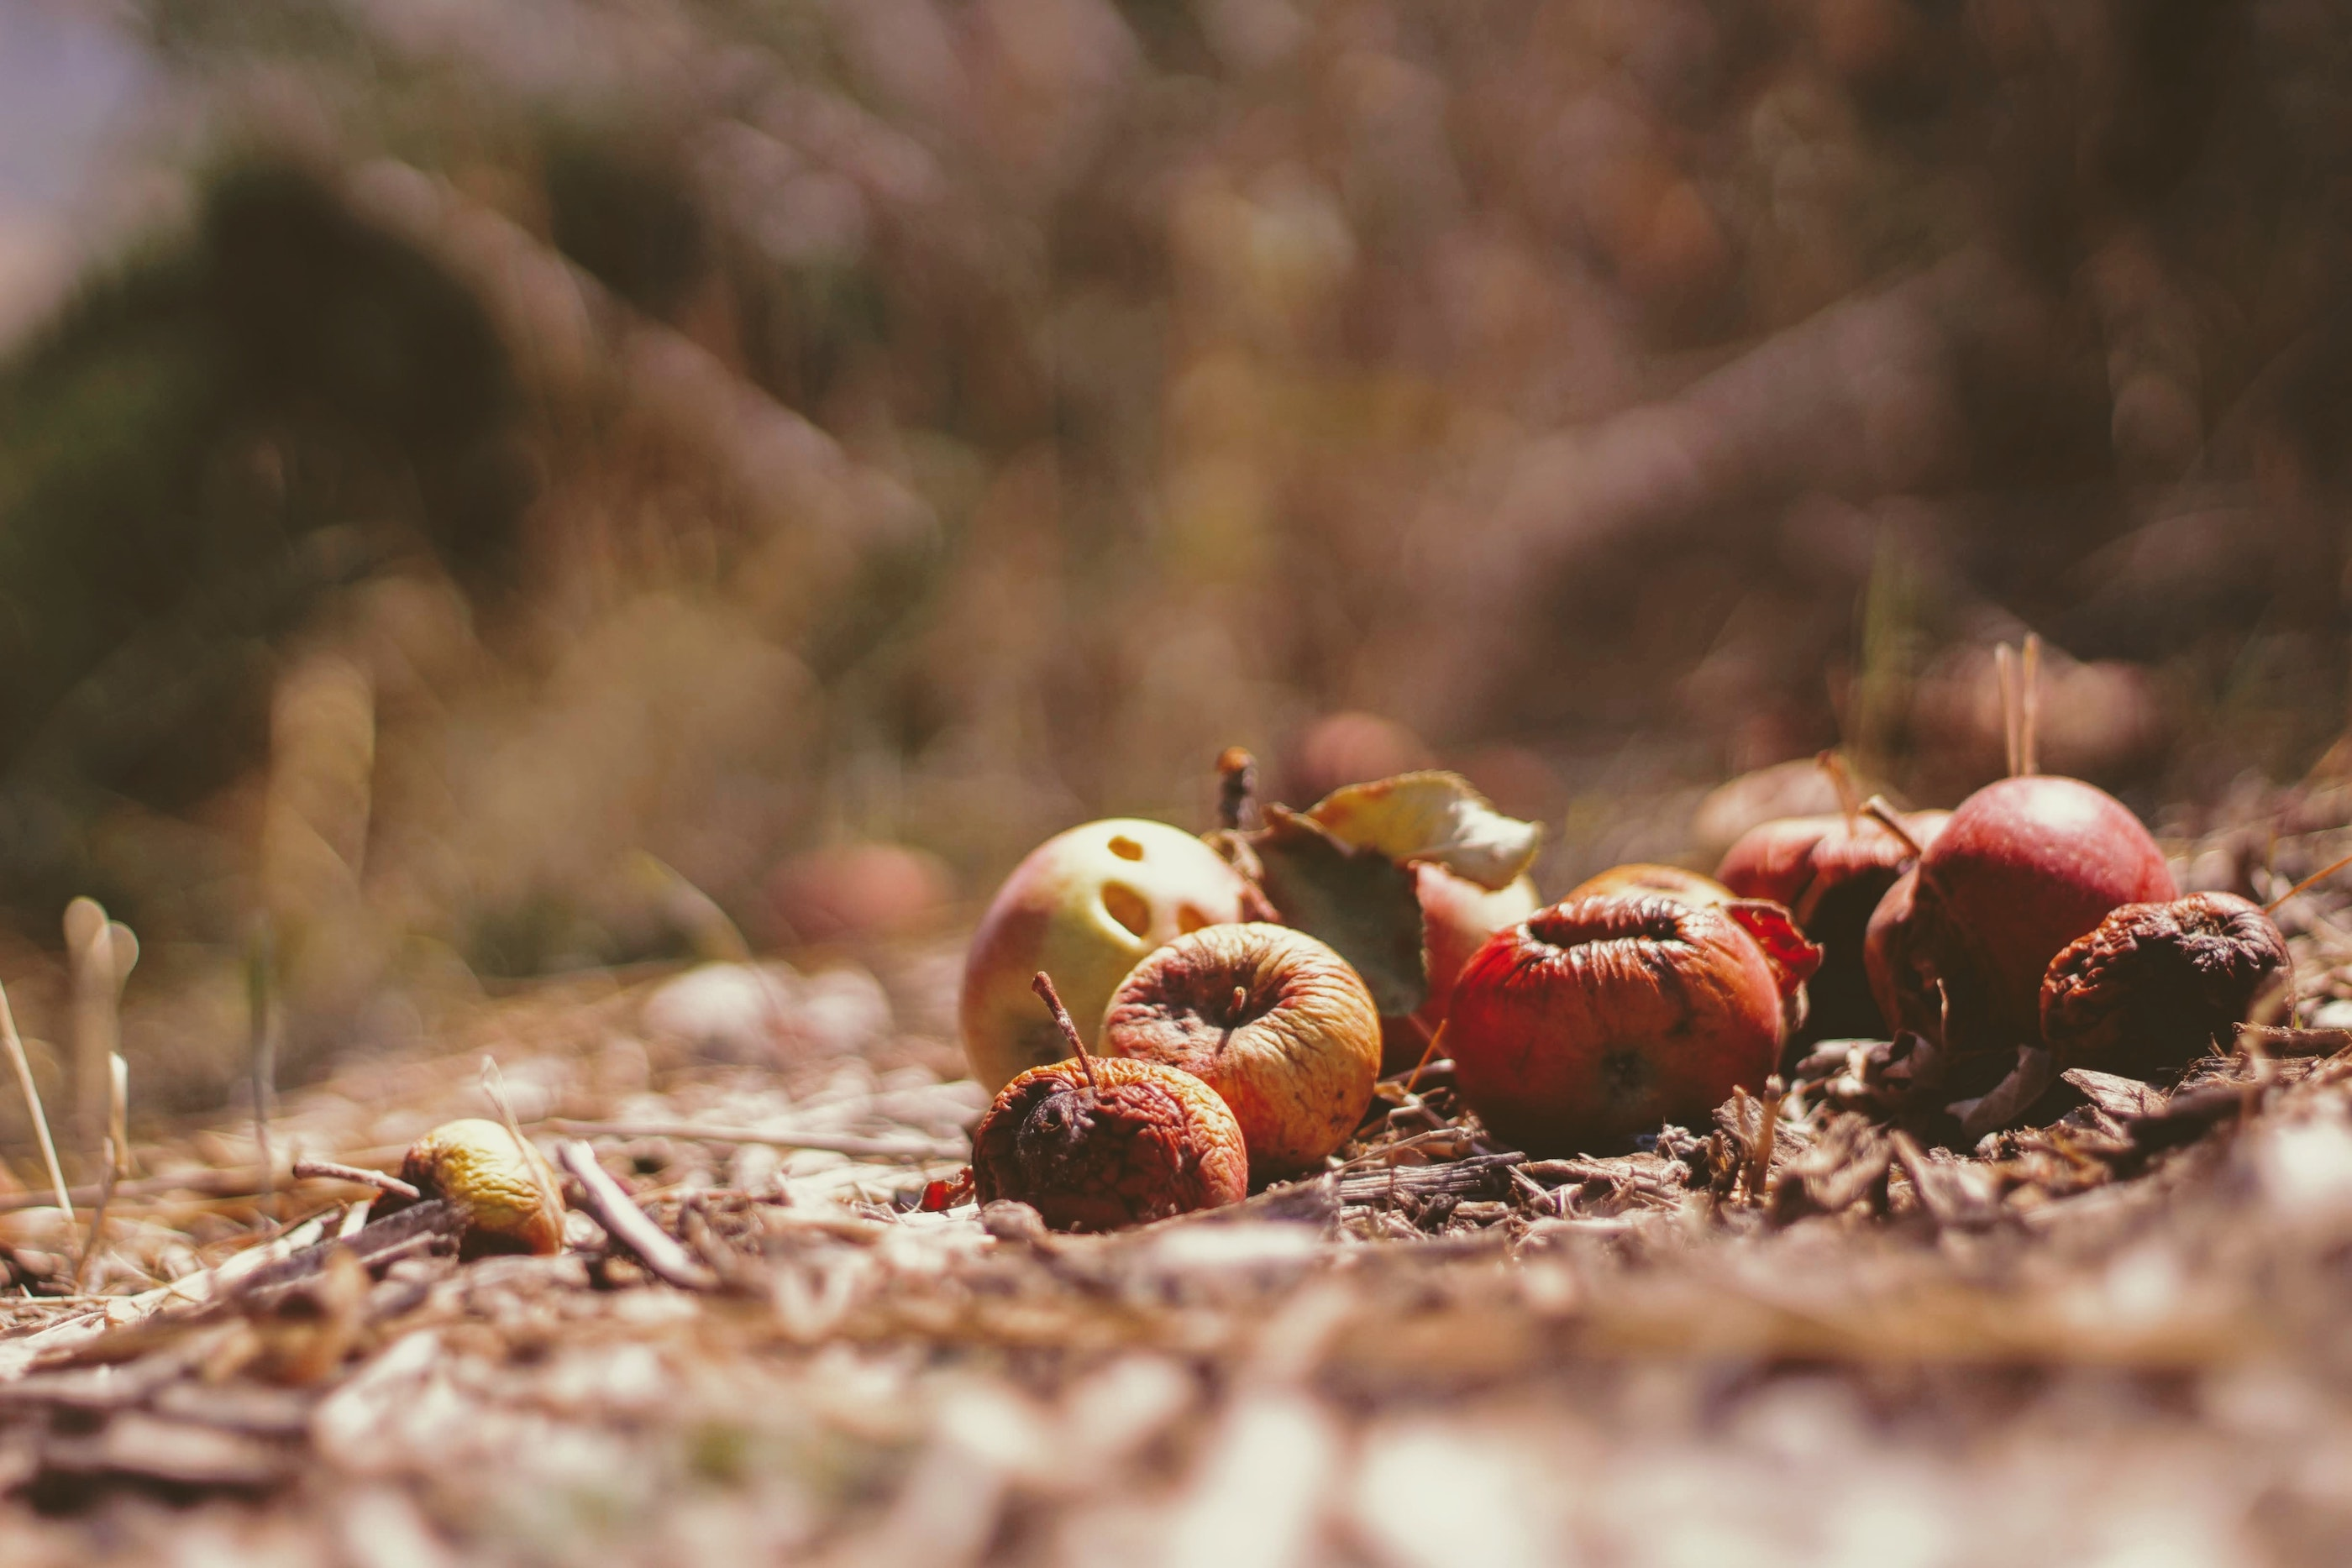 Apples rotting on the ground that are now food waste.